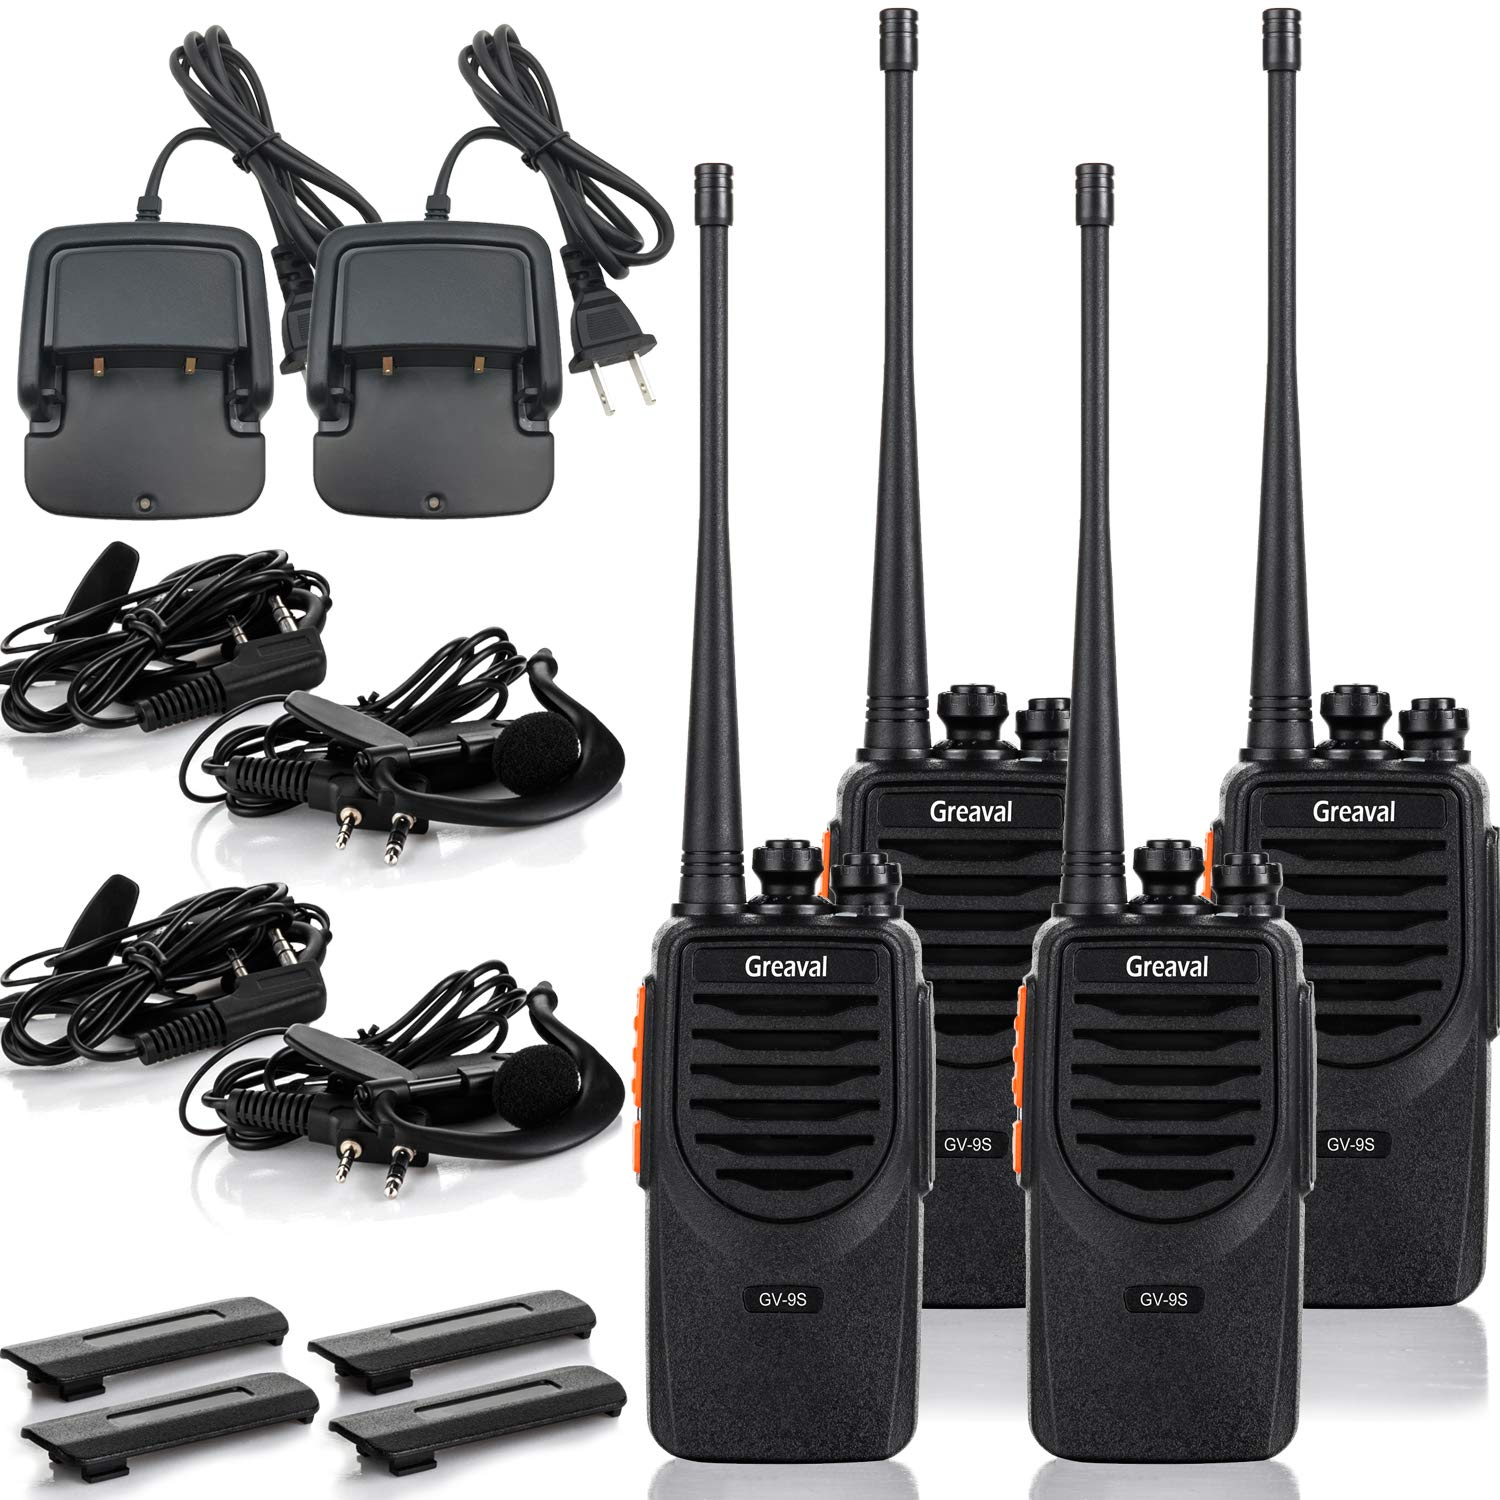 4Pack Desktop Charger Two-Way Radios UHF 400-470Mhz Earpiece USB Charing Greaval GV-9S Rechargeable 4 Pack Walkie Talkies for Adults Long Range with Li-ion Battery